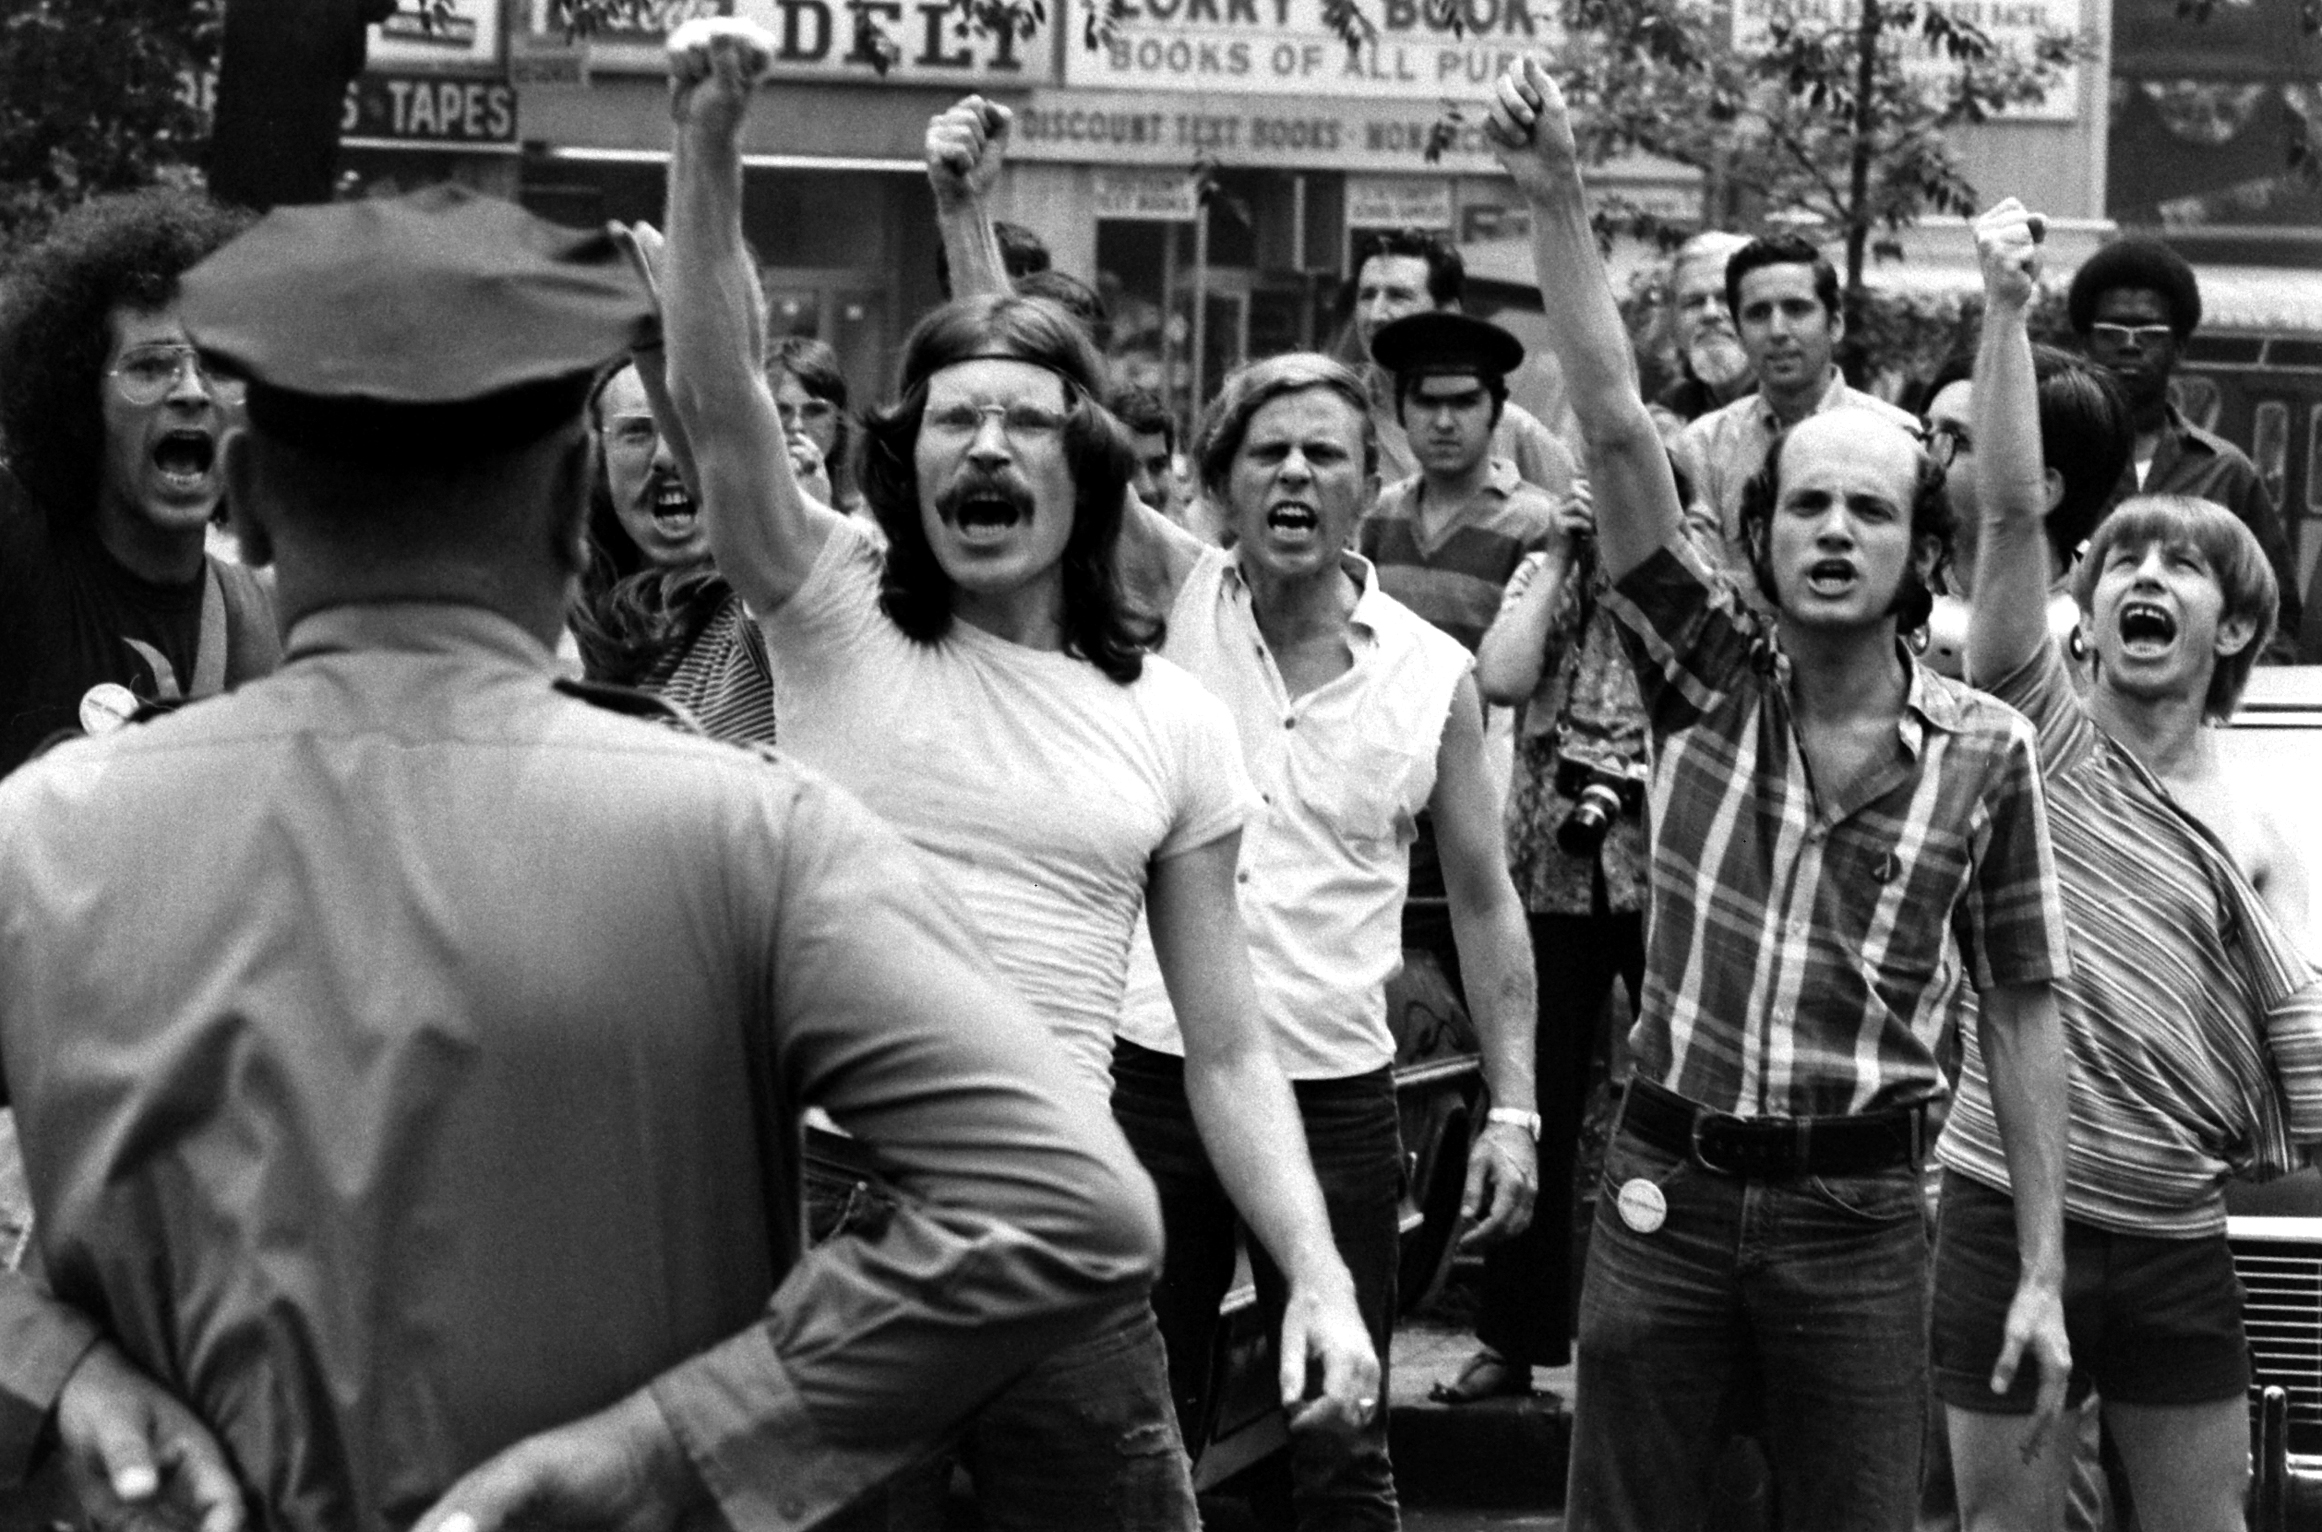 "<b>Caption from LIFE</b> When a bill guaranteeing equal job opportunities for homosexuals stalled in New York City Council last spring, militants demonstrated at City Hall. With fists raised, they shout a football style ""Gay Power"" cheer at police blocking the building."